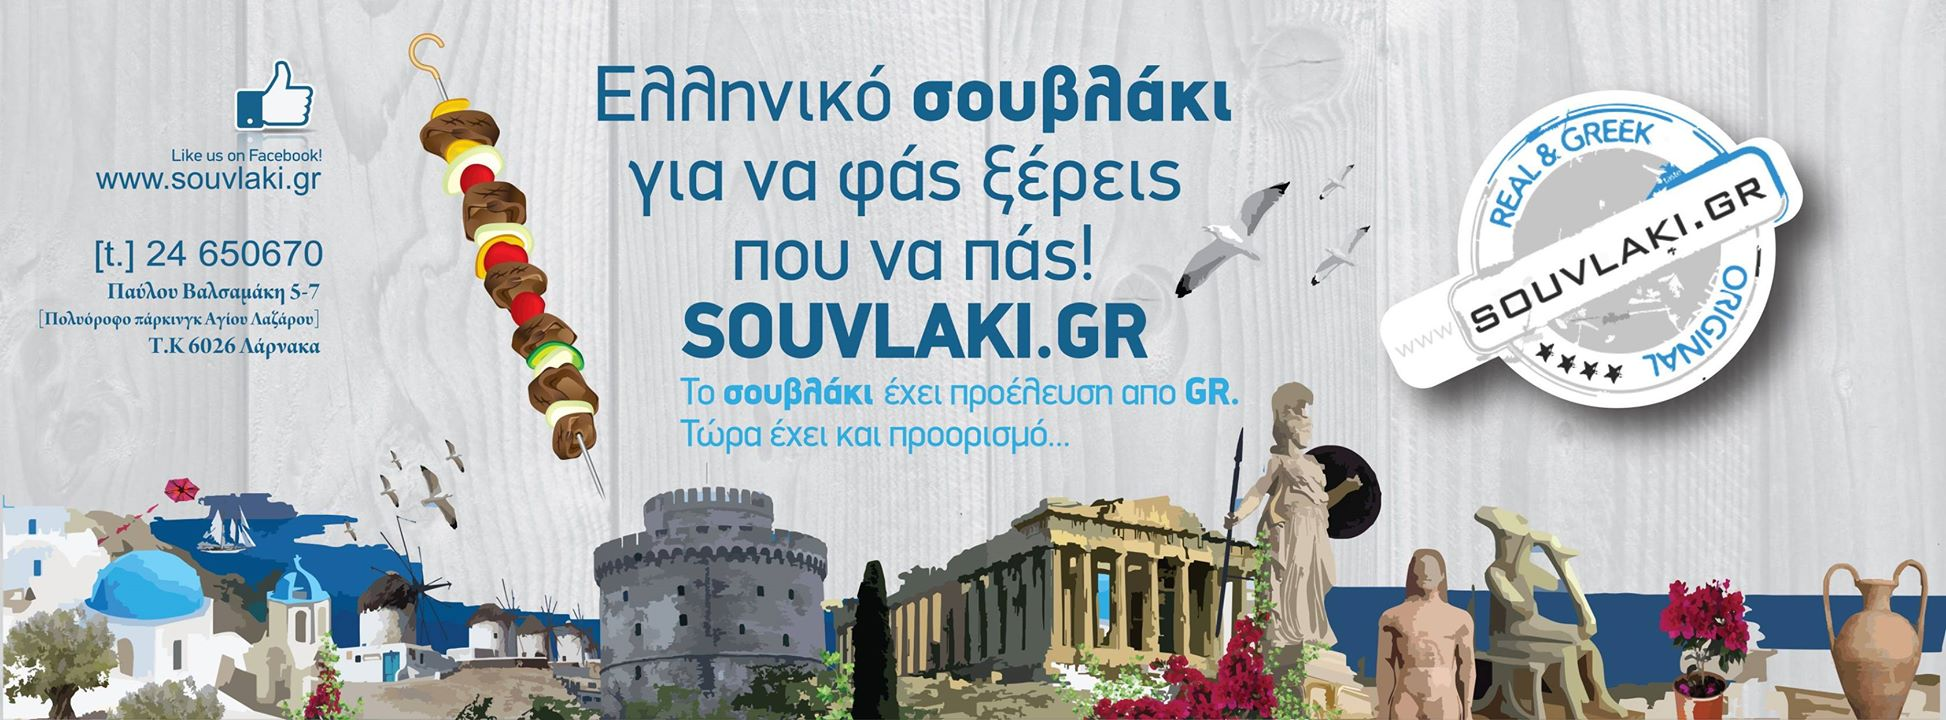 souvlaki.gr Cover Image on XploreCyprus